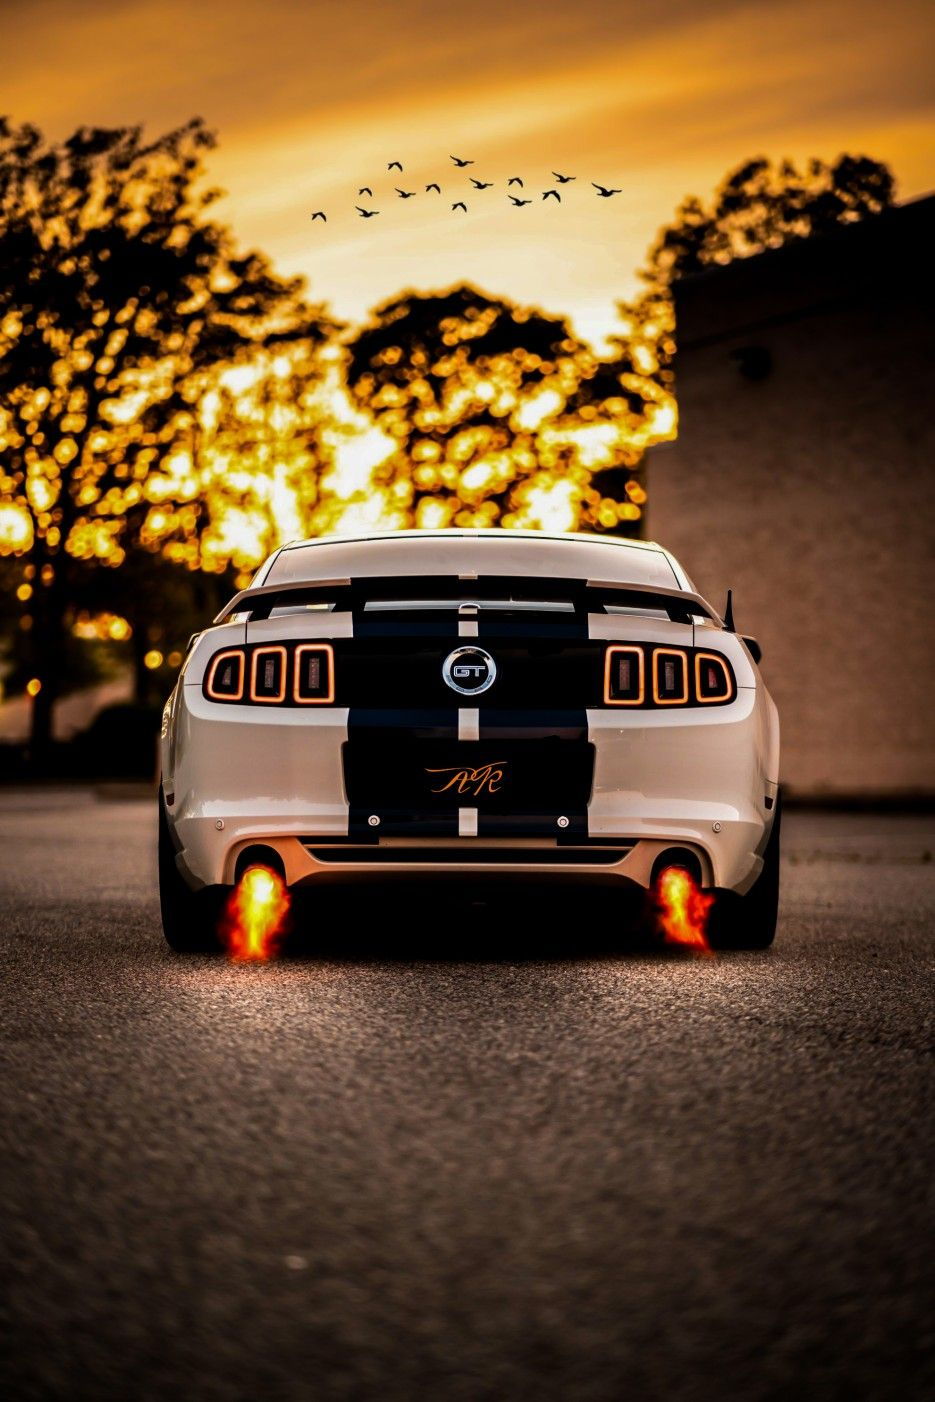 Extreme Power Gt Welovewallpixel Wallpixel Carlovers Awesome Portrait Vision Ford Mustang Gt Car Iphone Wallpaper Mustang Gt